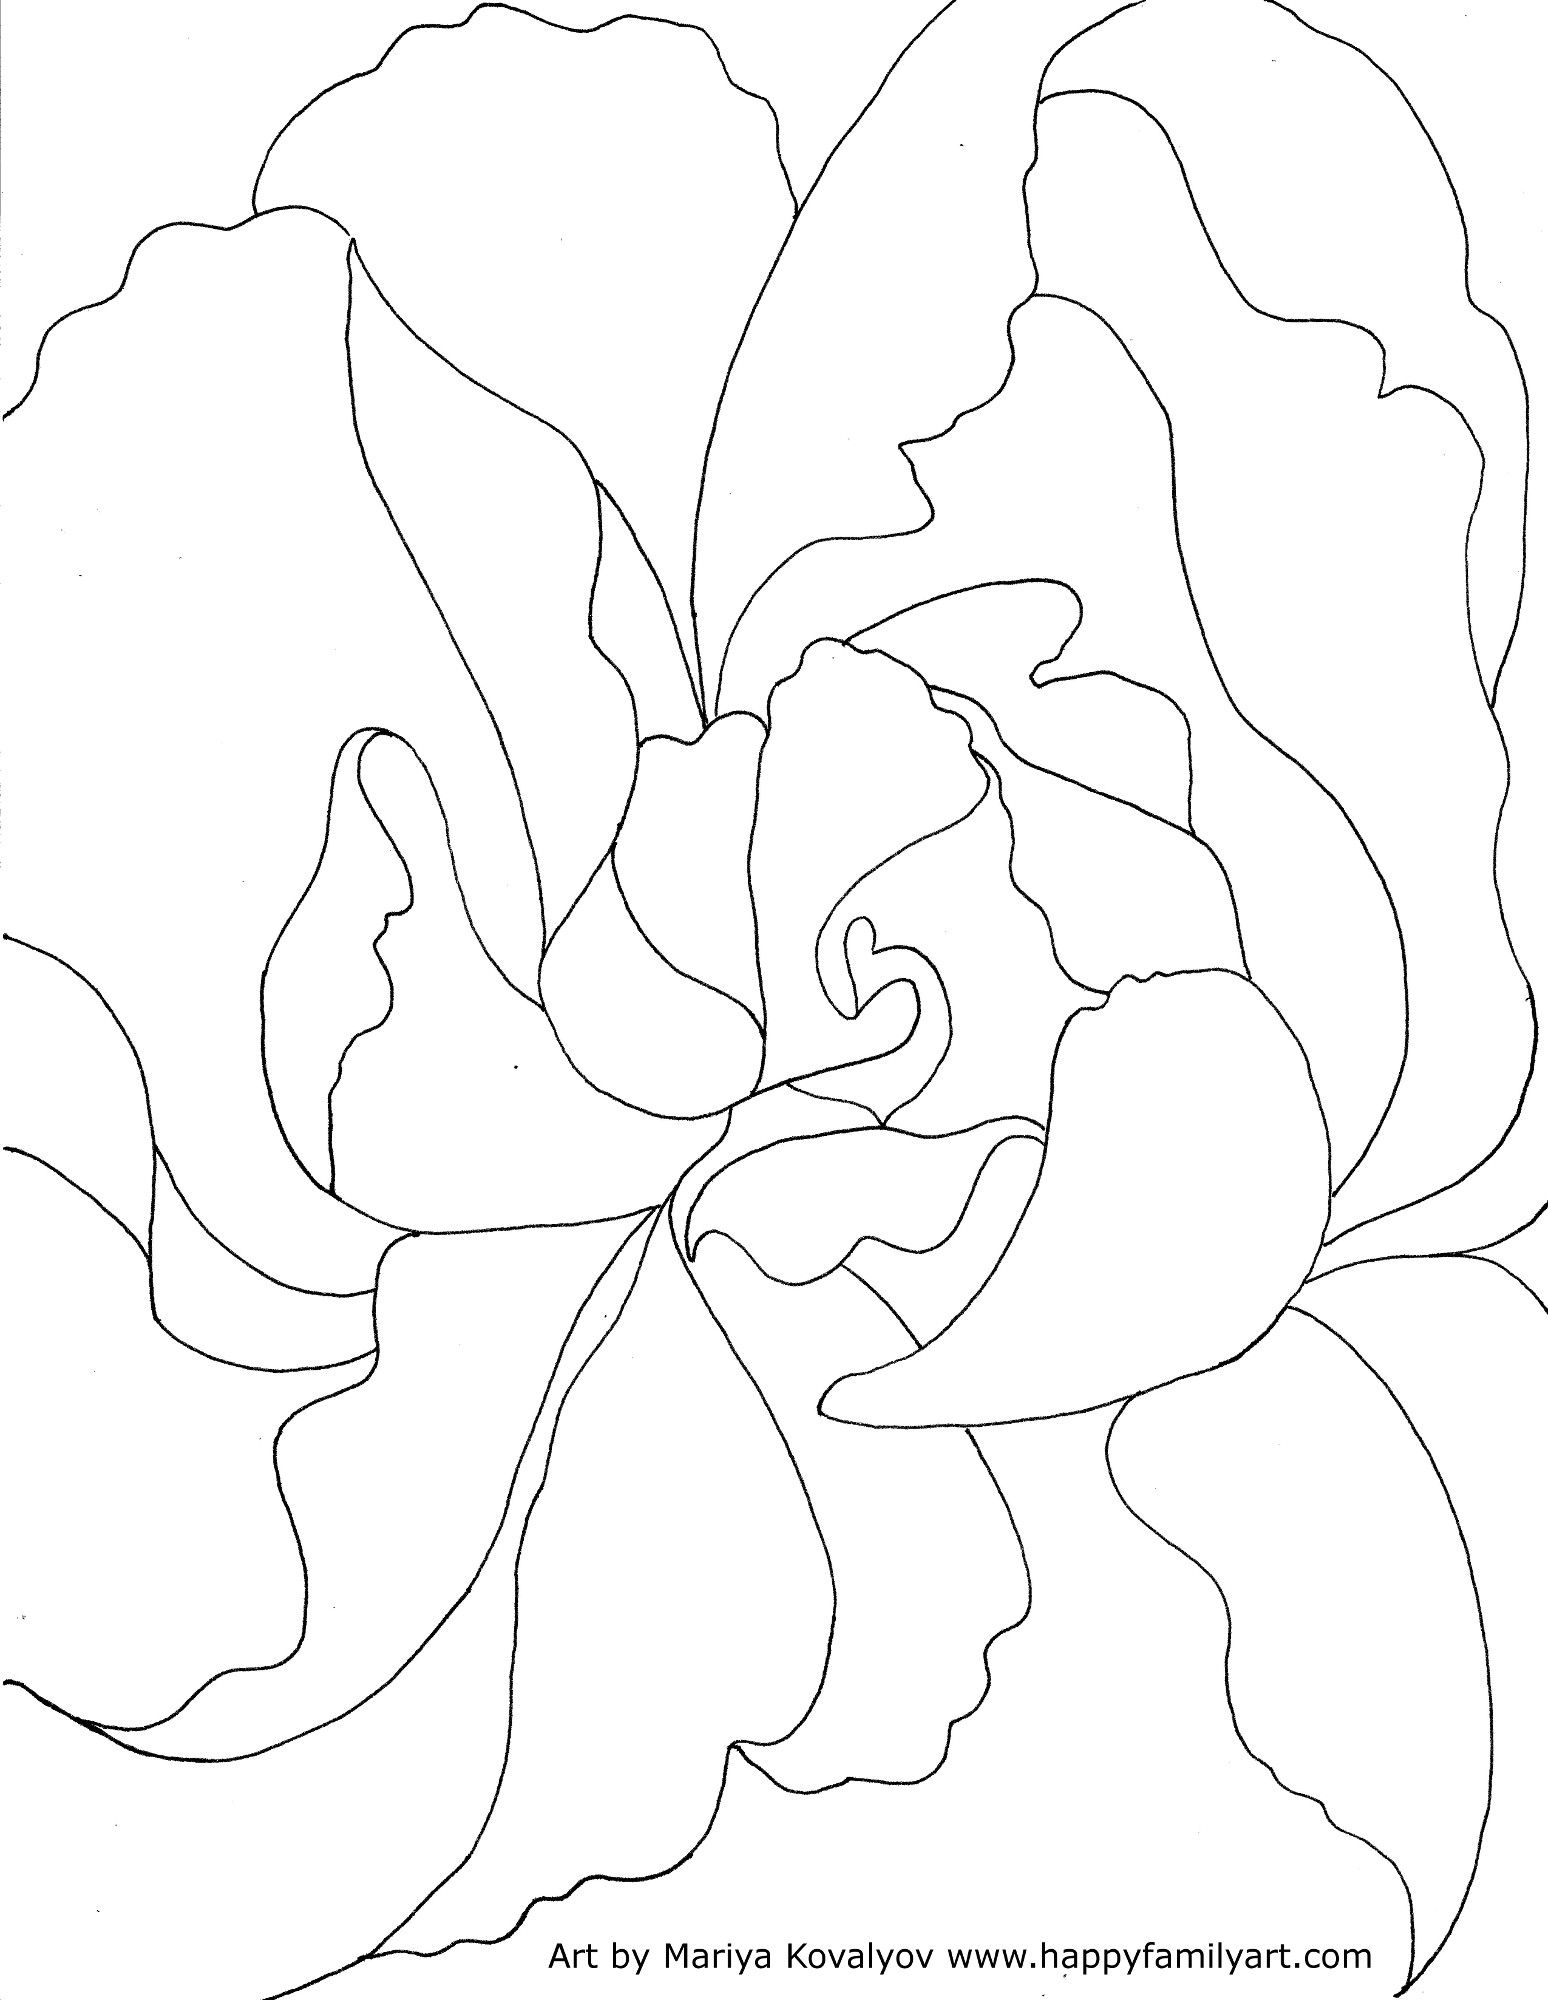 1548x2000 Coloring Pages Free, Original, Good Quality, Coloring Pages